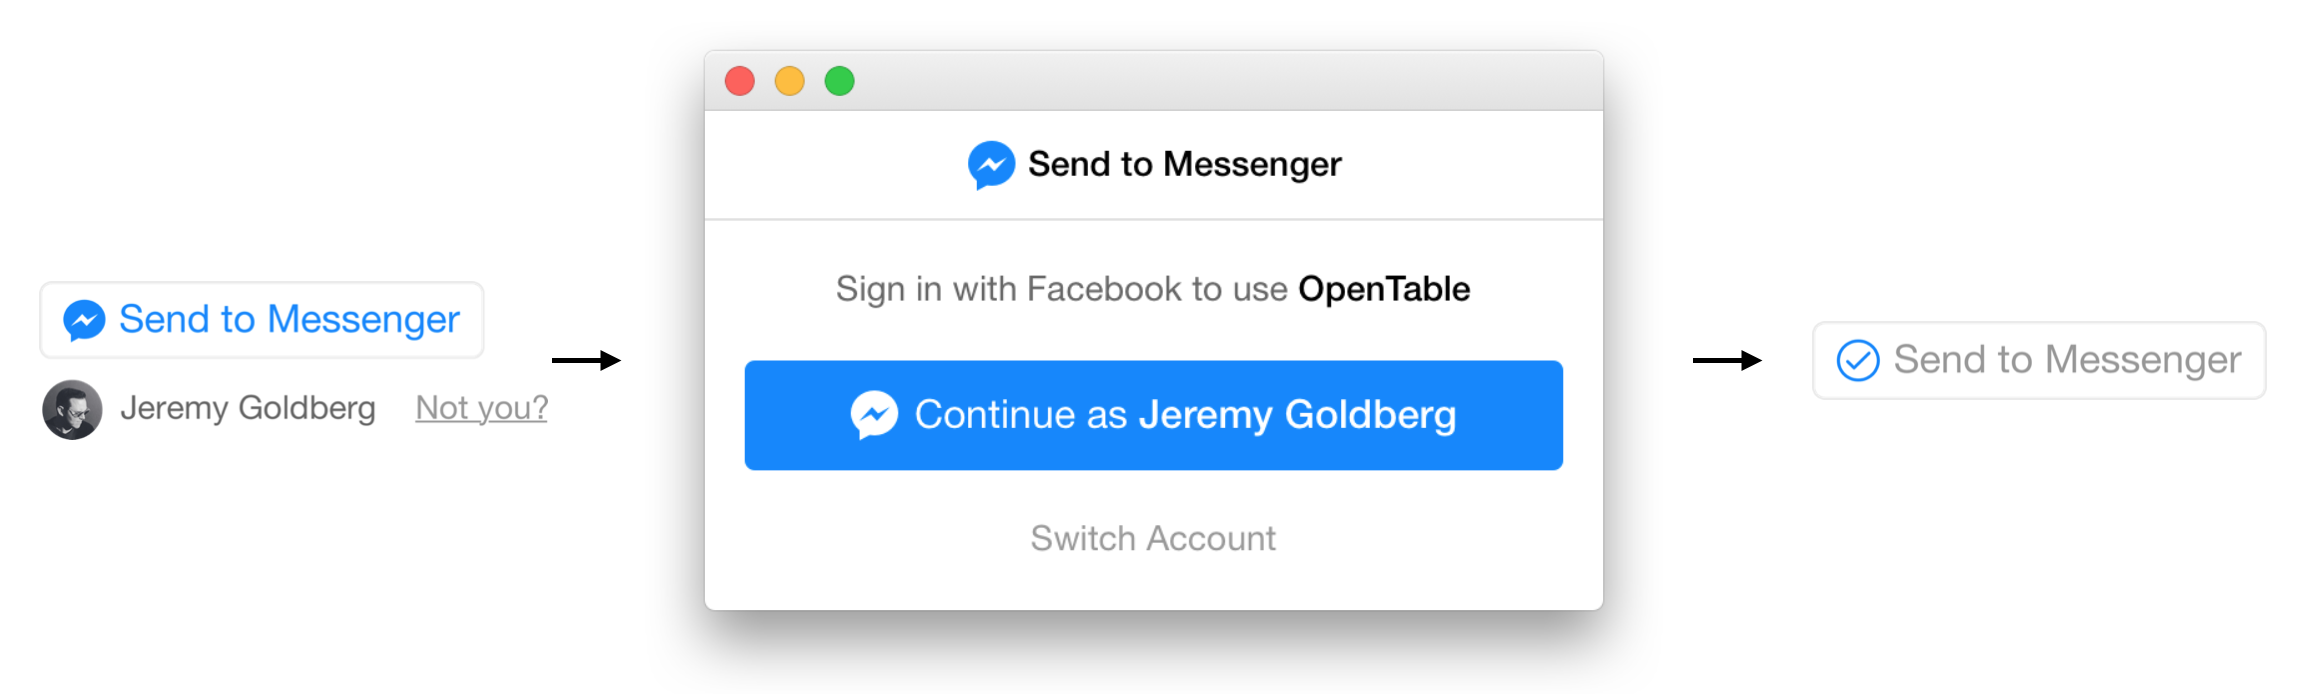 Blueprint: Handling Customer Service In Messenger